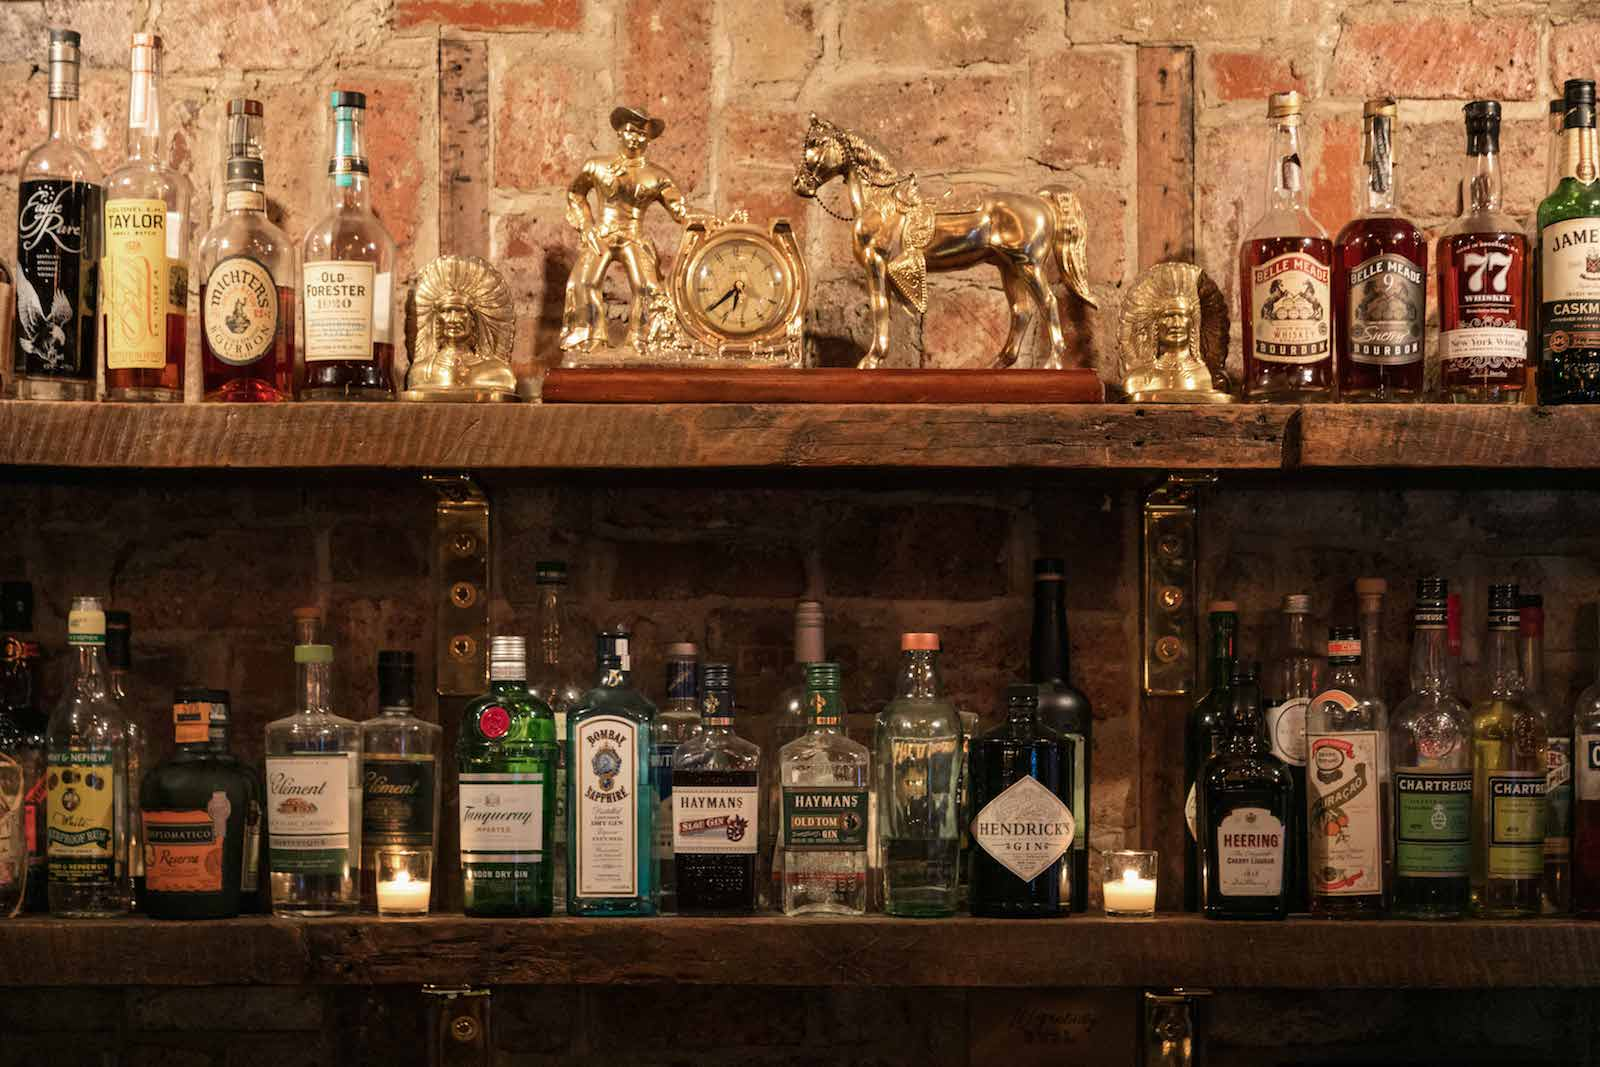 Shelves holding alcohol behind the bar of Urban Cowboy Nashville's Public House. Golden sculpture makes up the center of the top shelf.